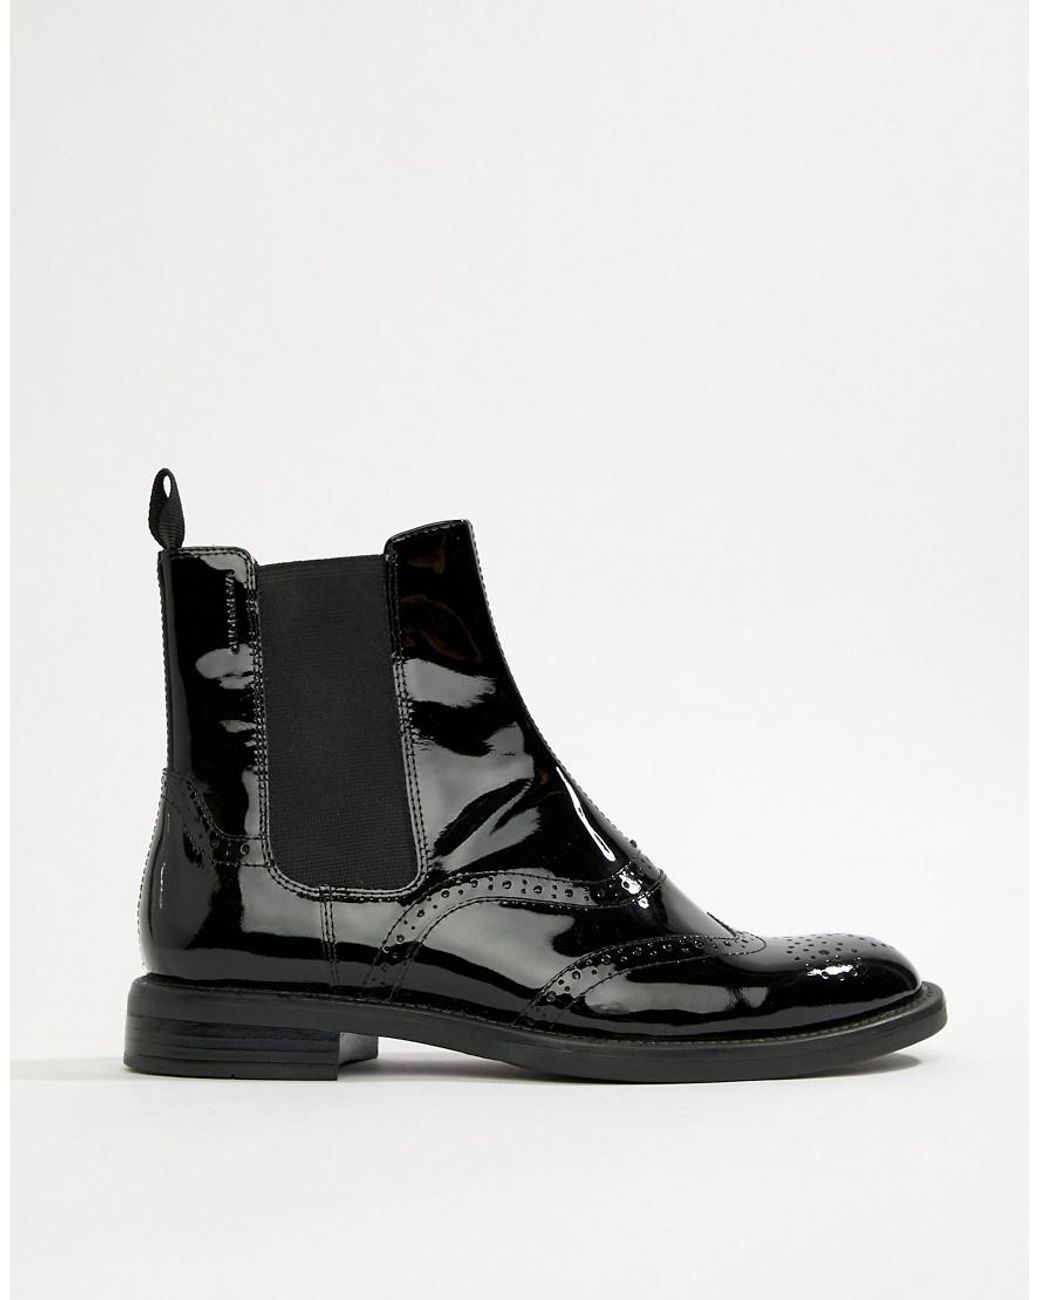 ee03b380b8dfe Vagabond Amina Patent Leather Brogue Chelsea Boot in Black - Lyst